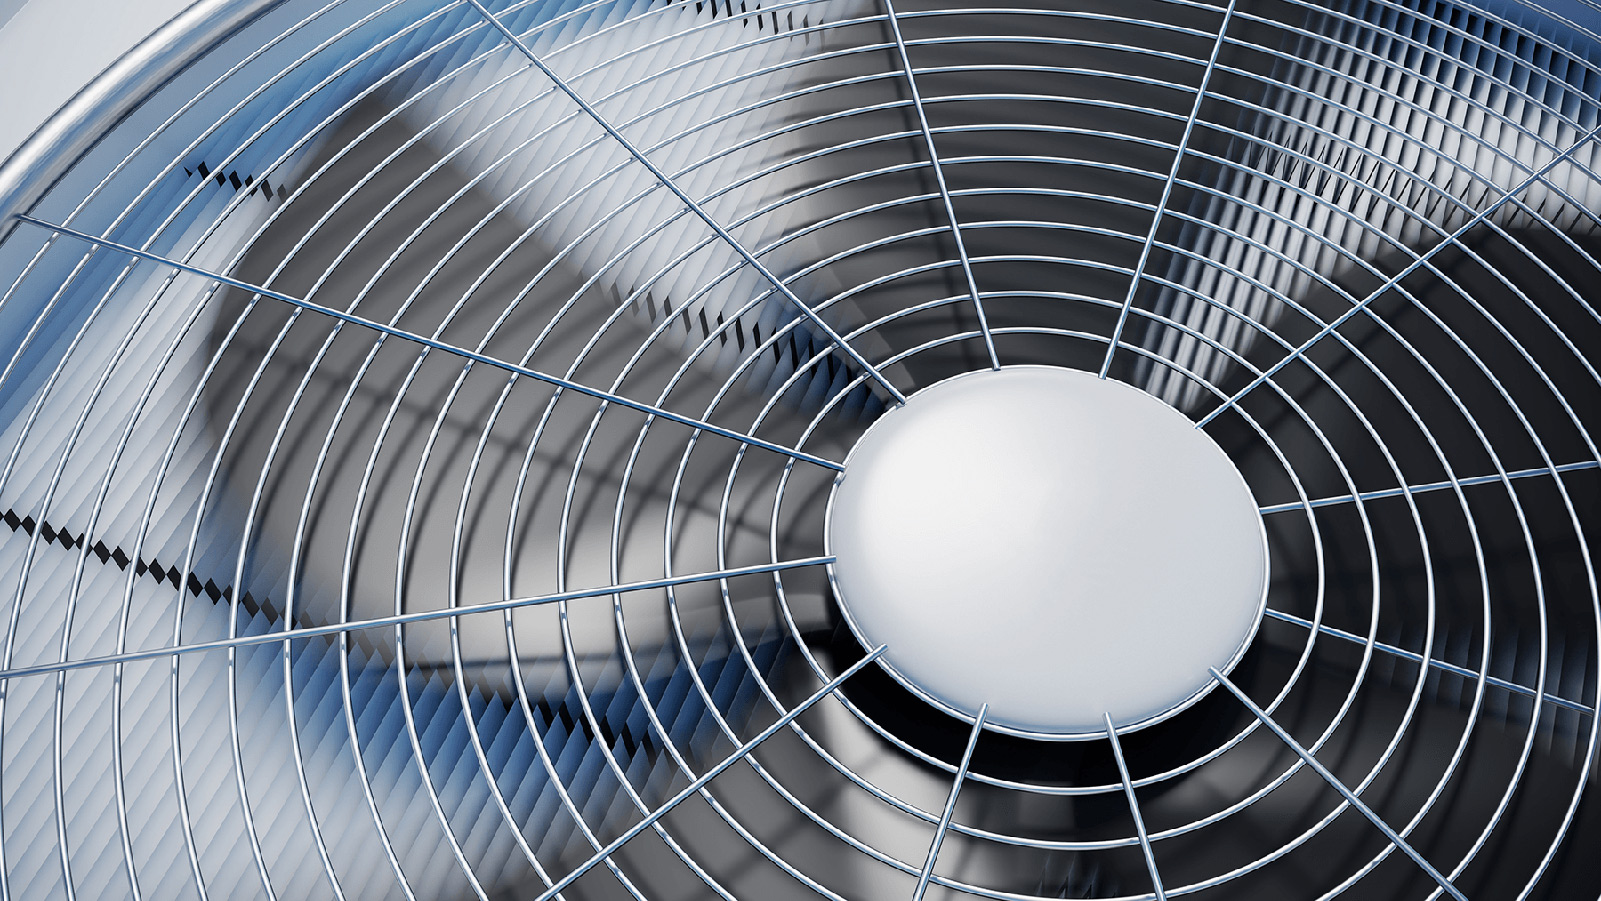 Close up view of an HVAC fan.